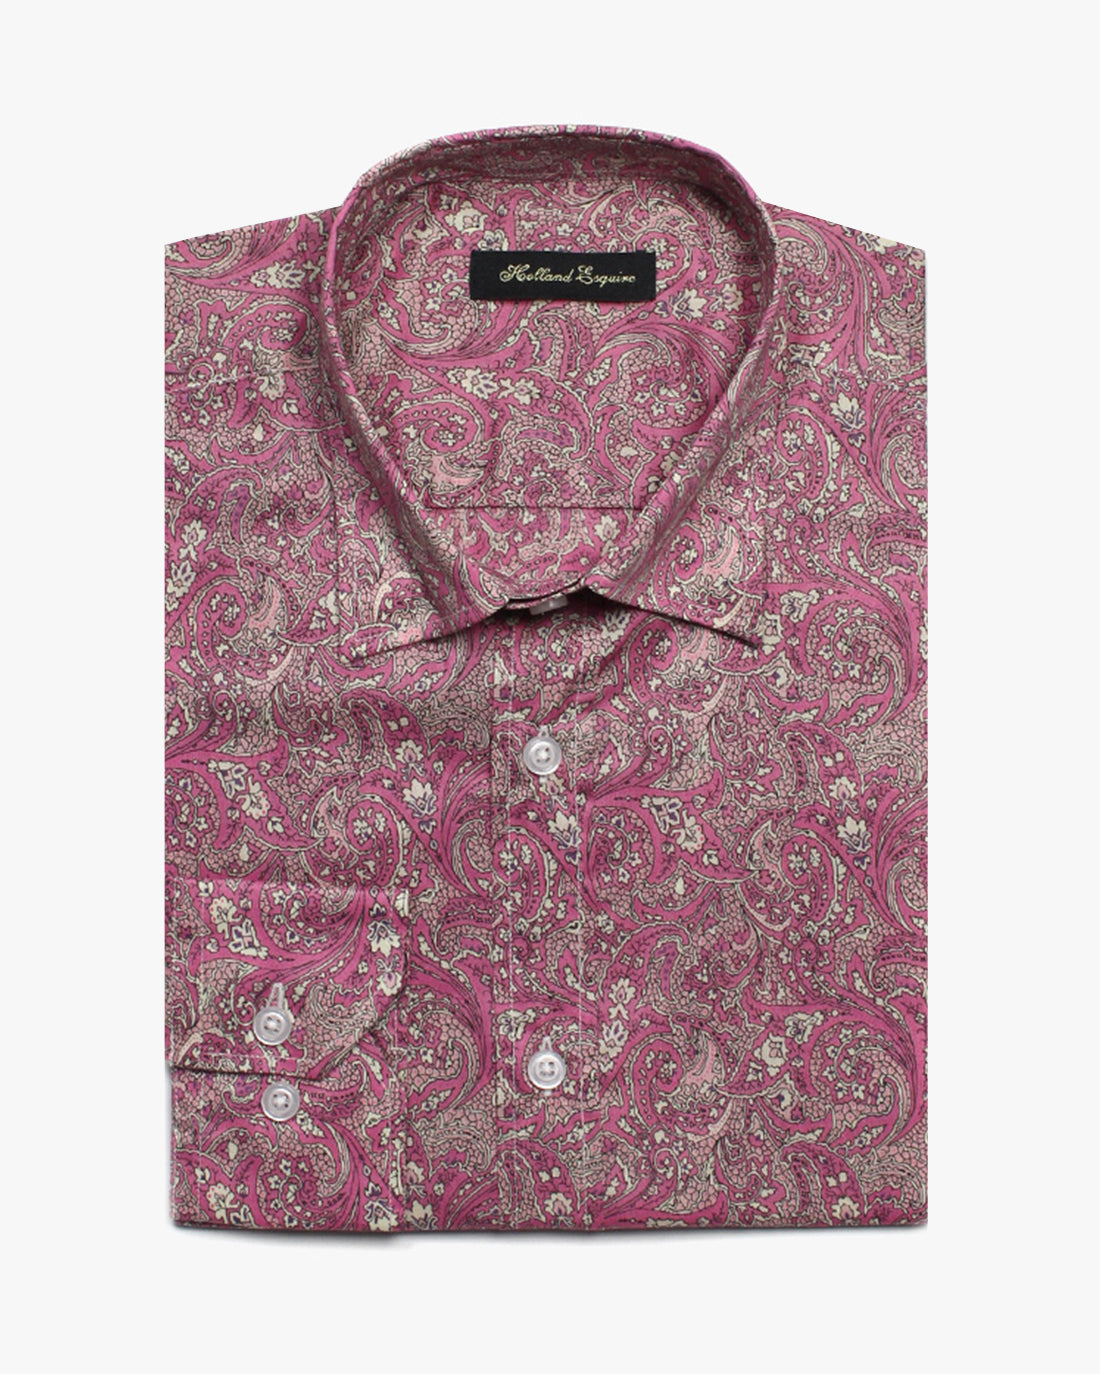 Pink Liberty Paisley Button Under Shirt - Holland Esquire